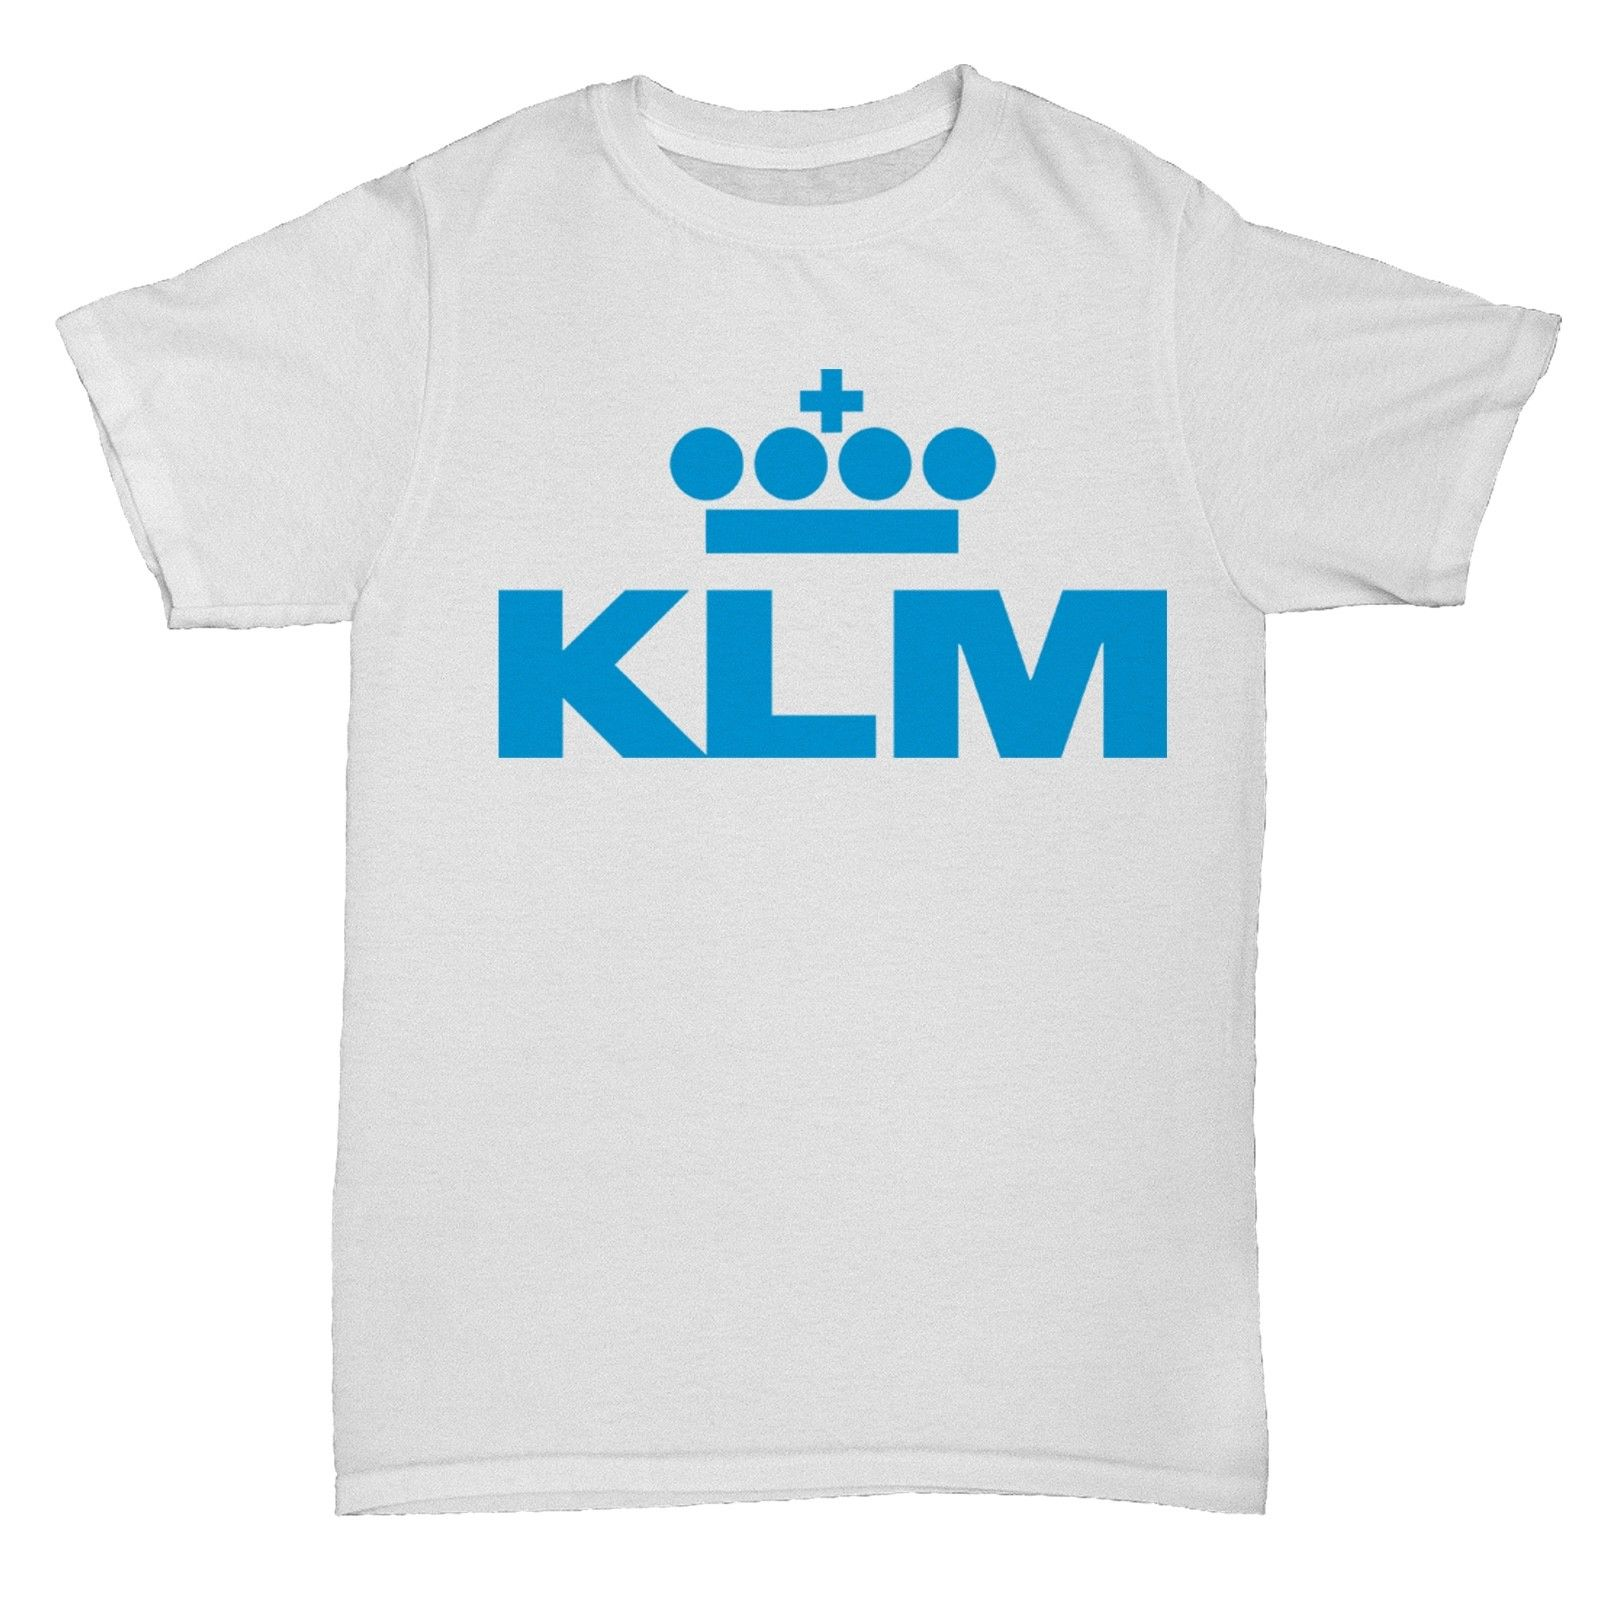 KLM AIRLINES RETRO AEROPLANE BOAC PAN AM T SHIRT Black Cotton T-Shirt Top Tee Cartoon Character Men Cool Tees Tops